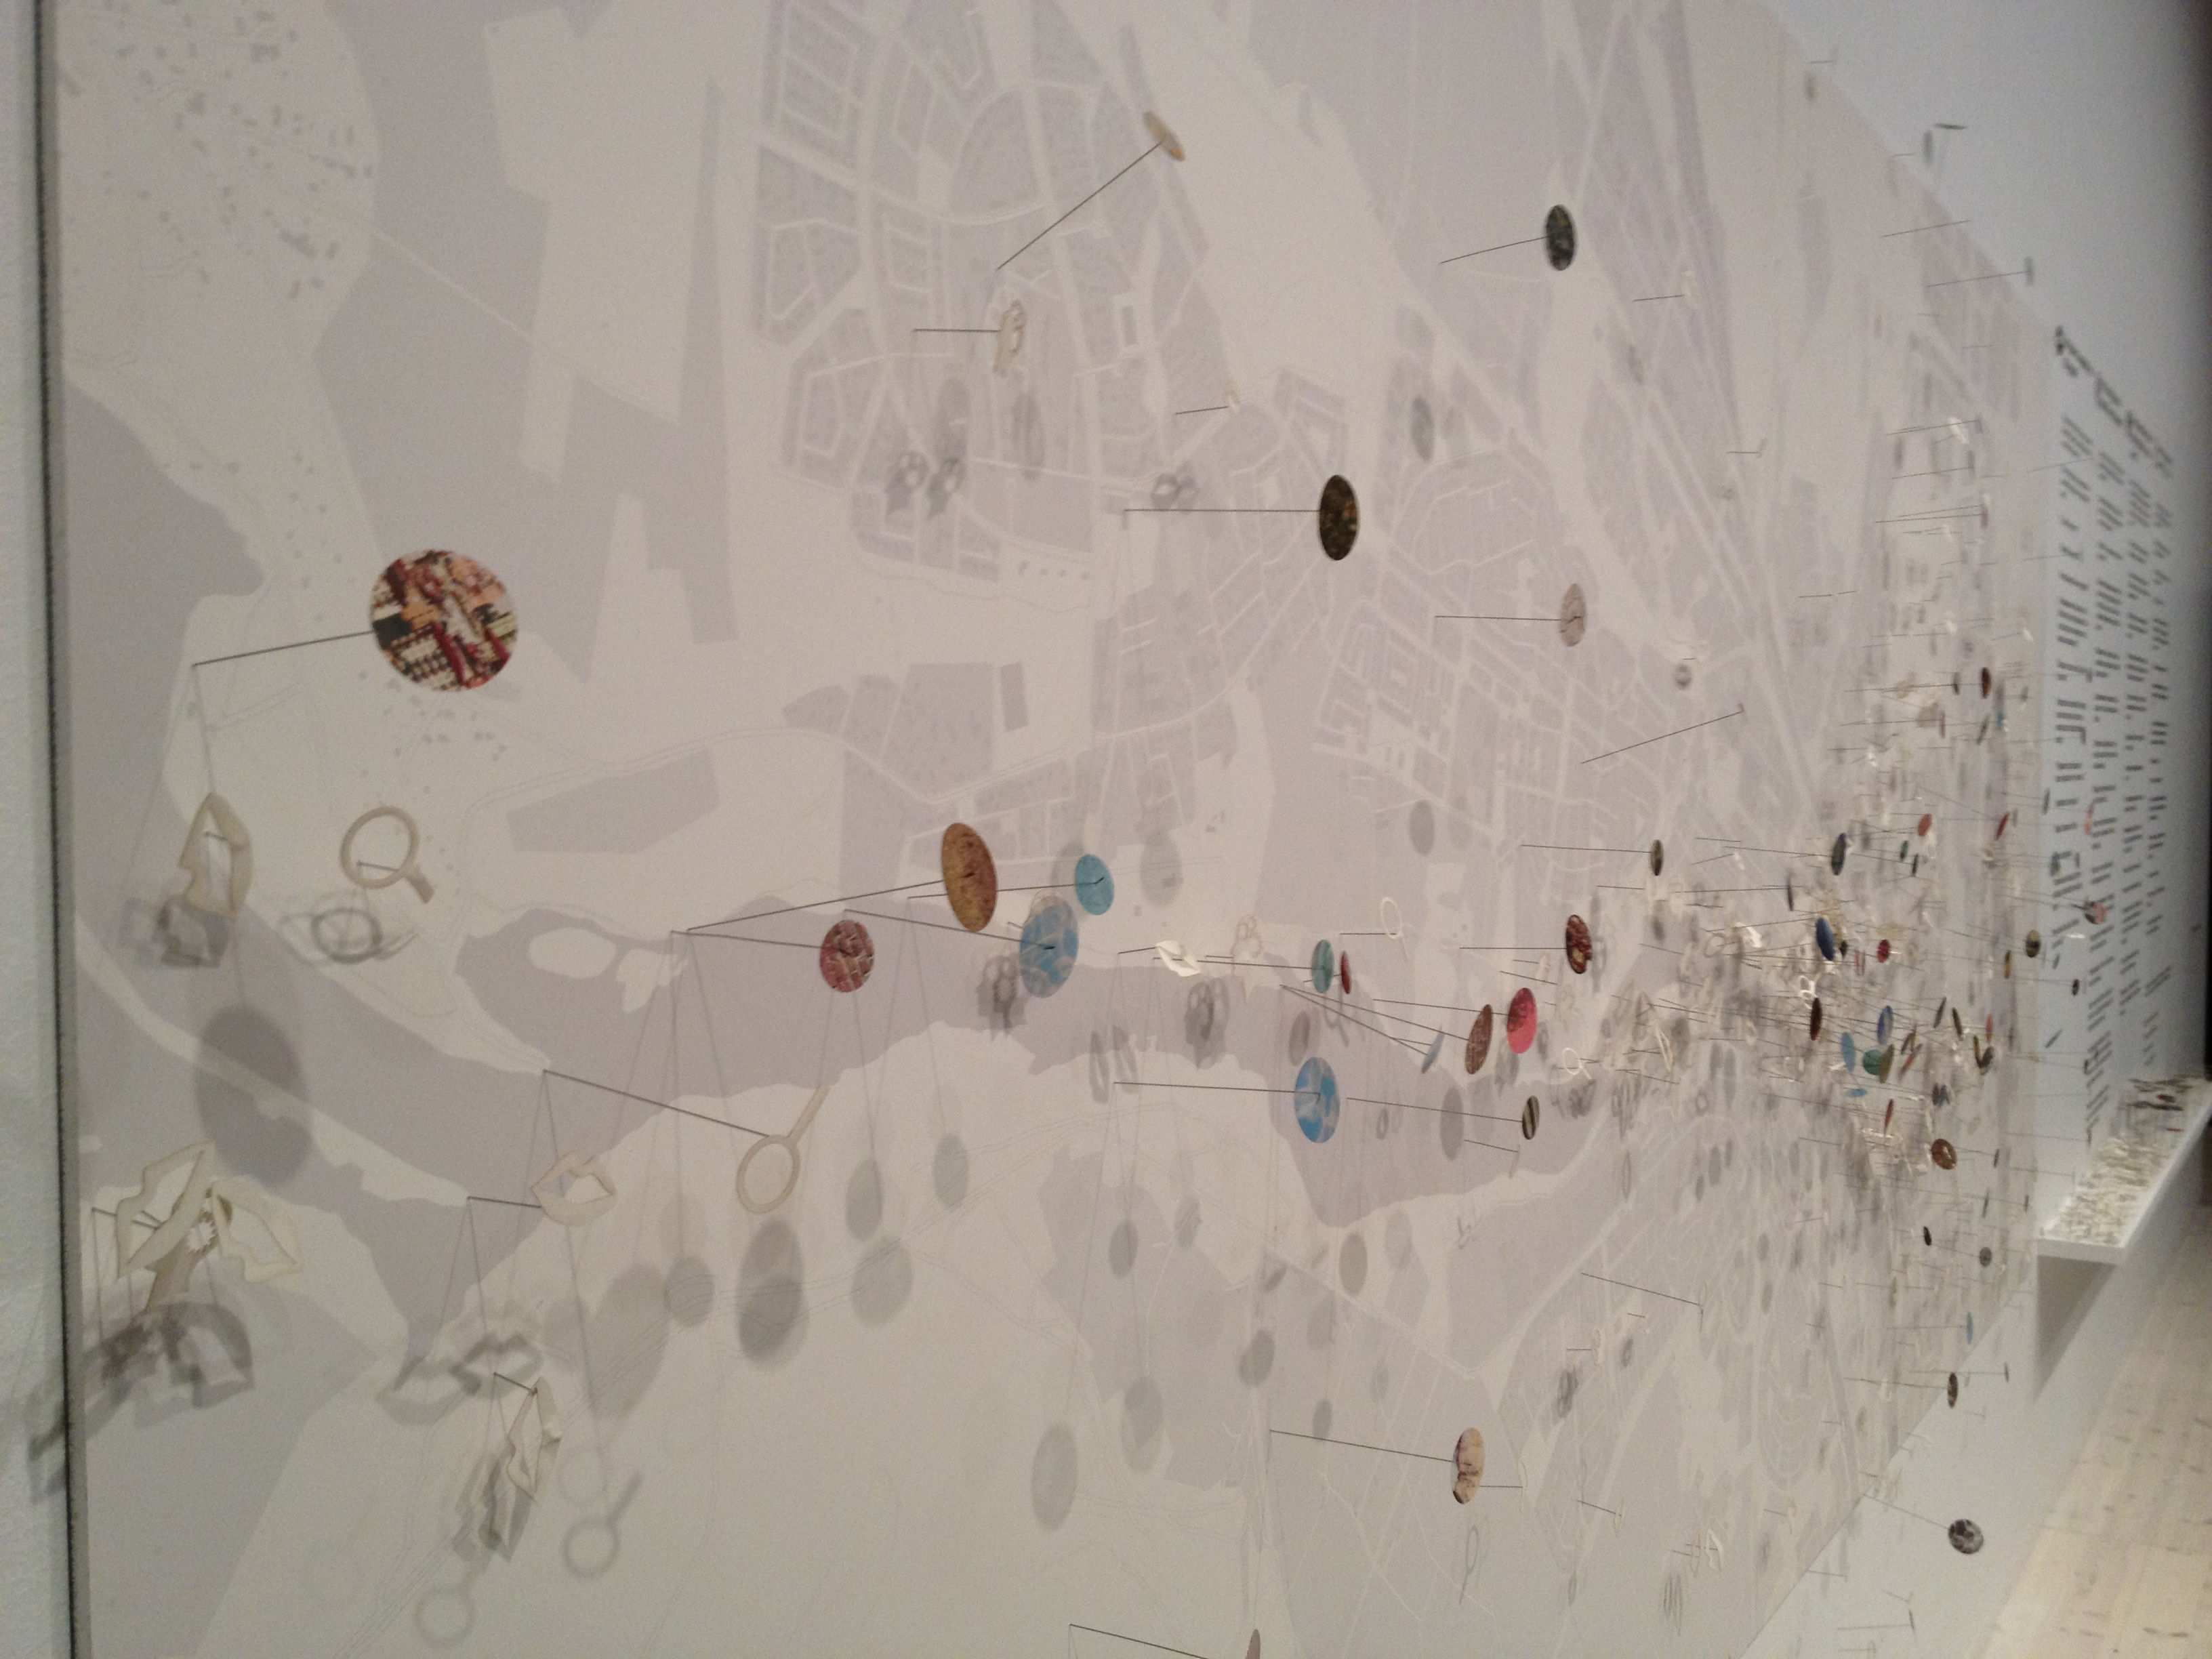 A lovely collaborative mapping project on display in the Communitas exhibition at the Bildmuseet.